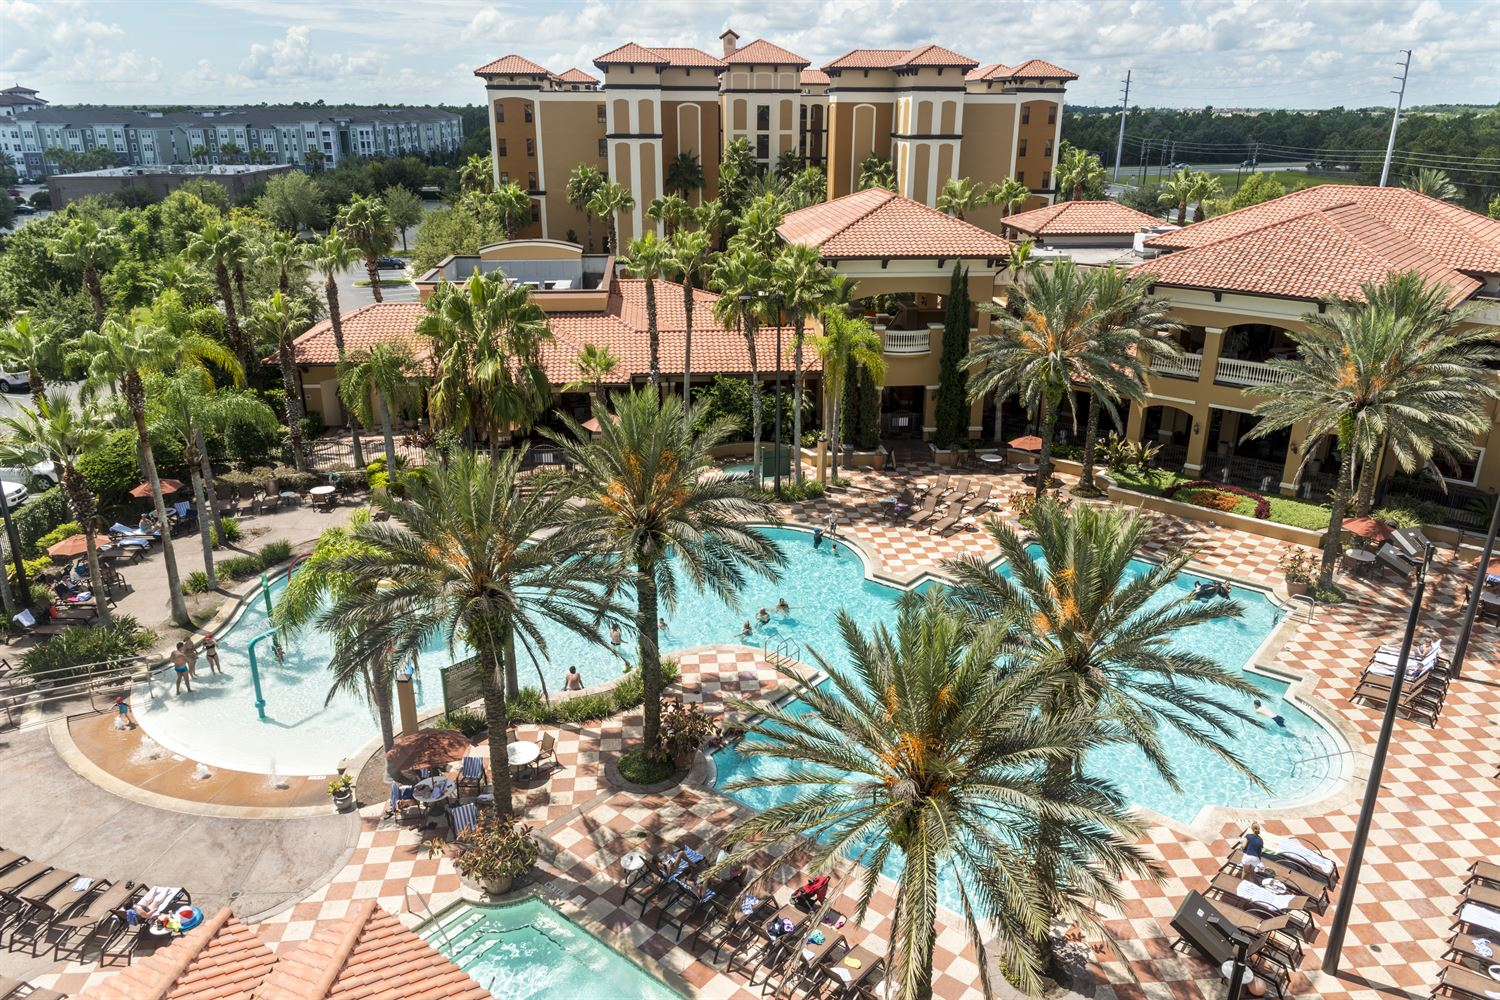 Ariel View of Pool at Floridays Orlando Resort